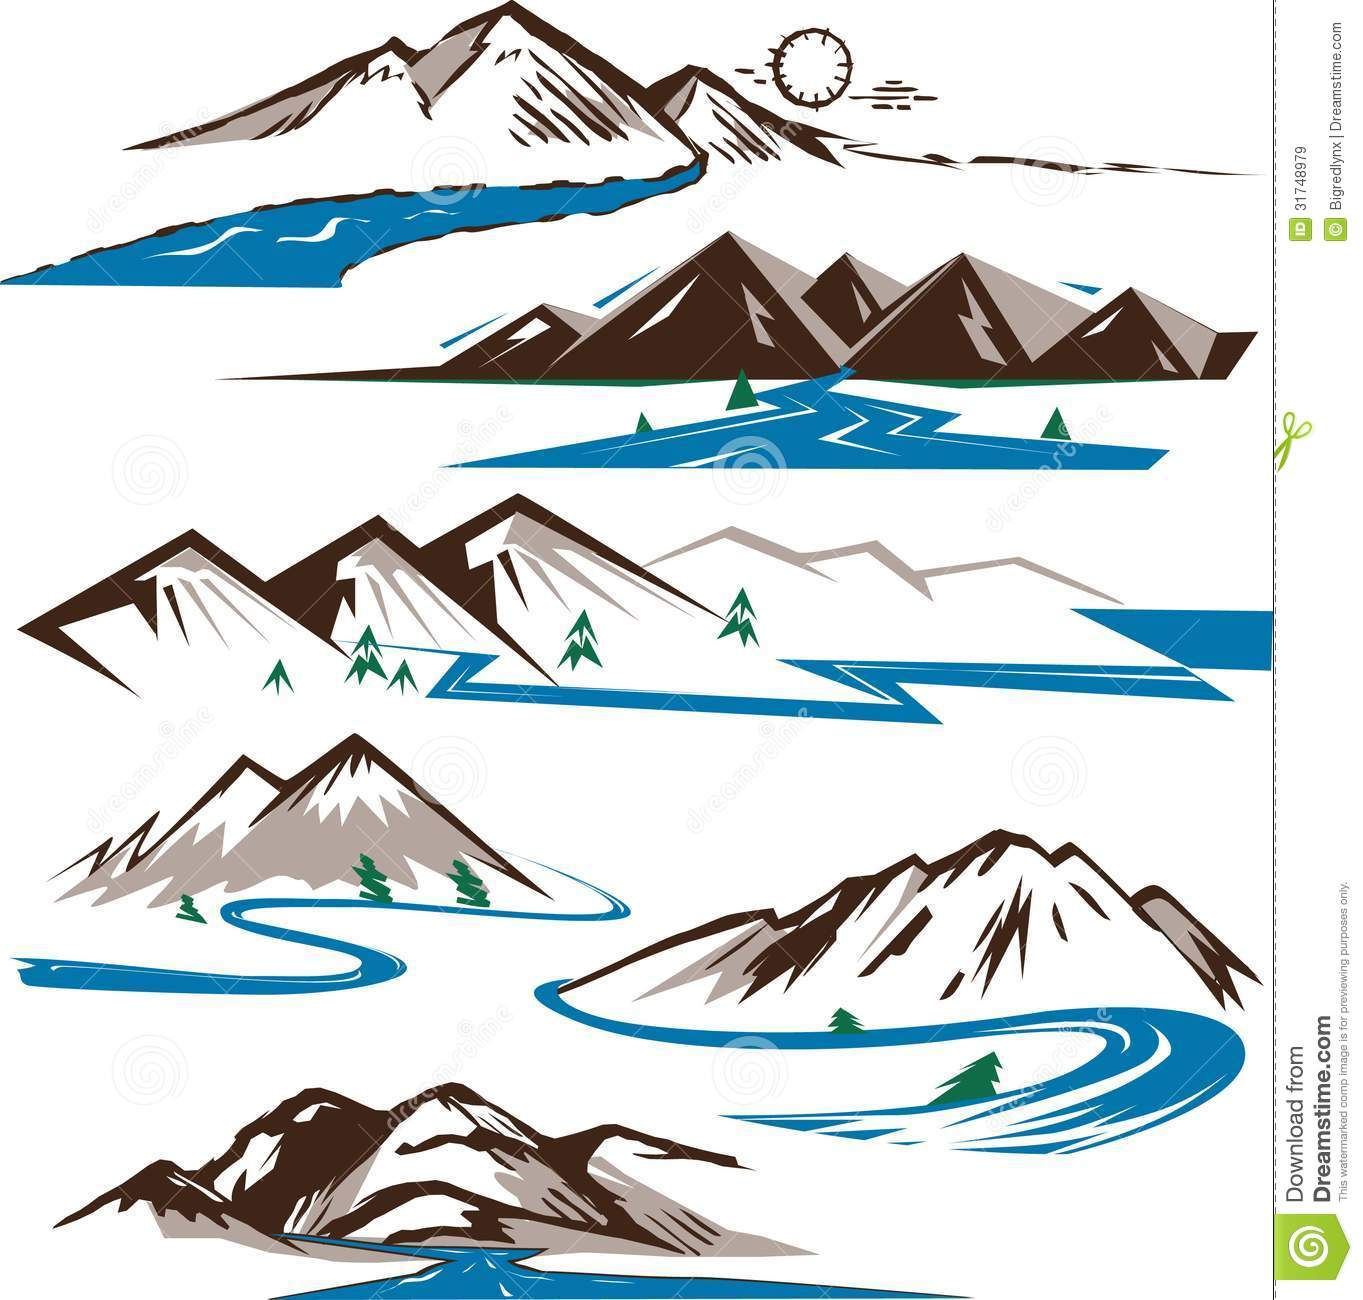 Mountain River Clipart - Clipart Kid clip art library stock